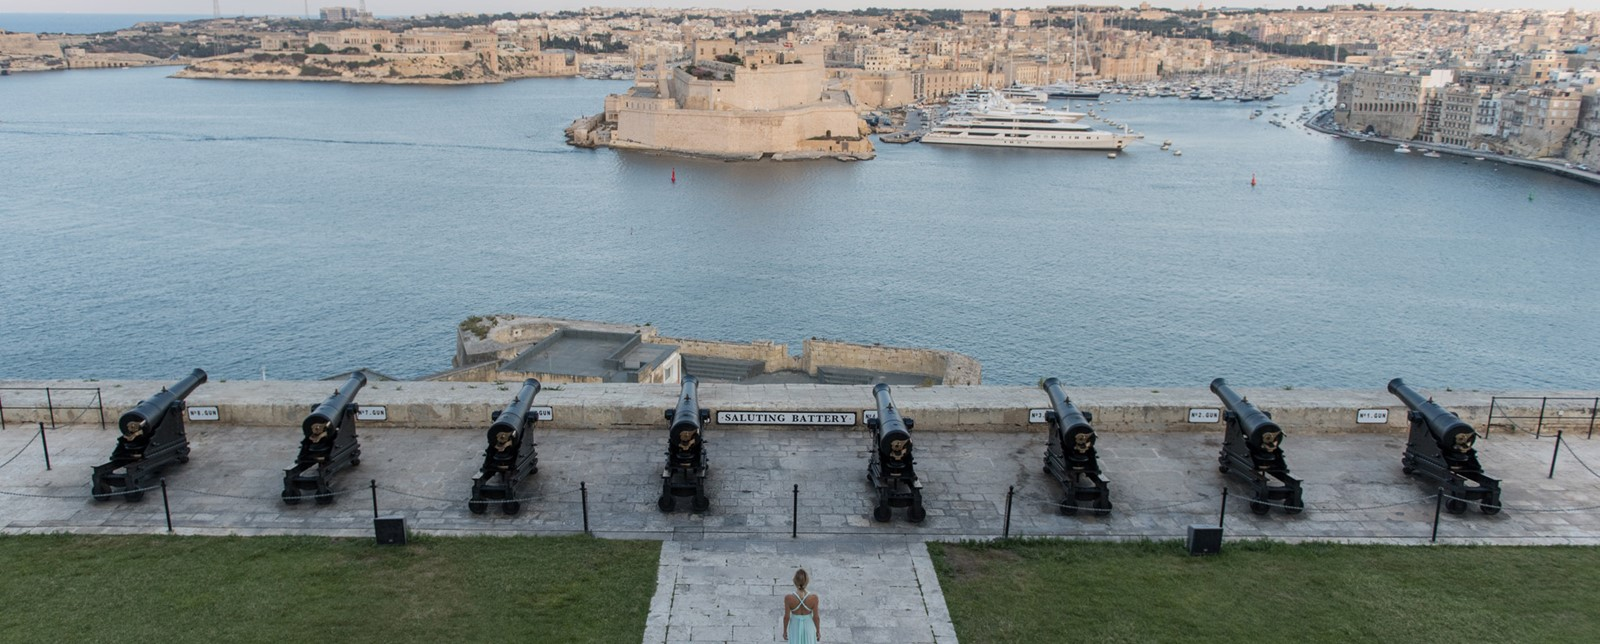 Saluting Battery Valletta harbour